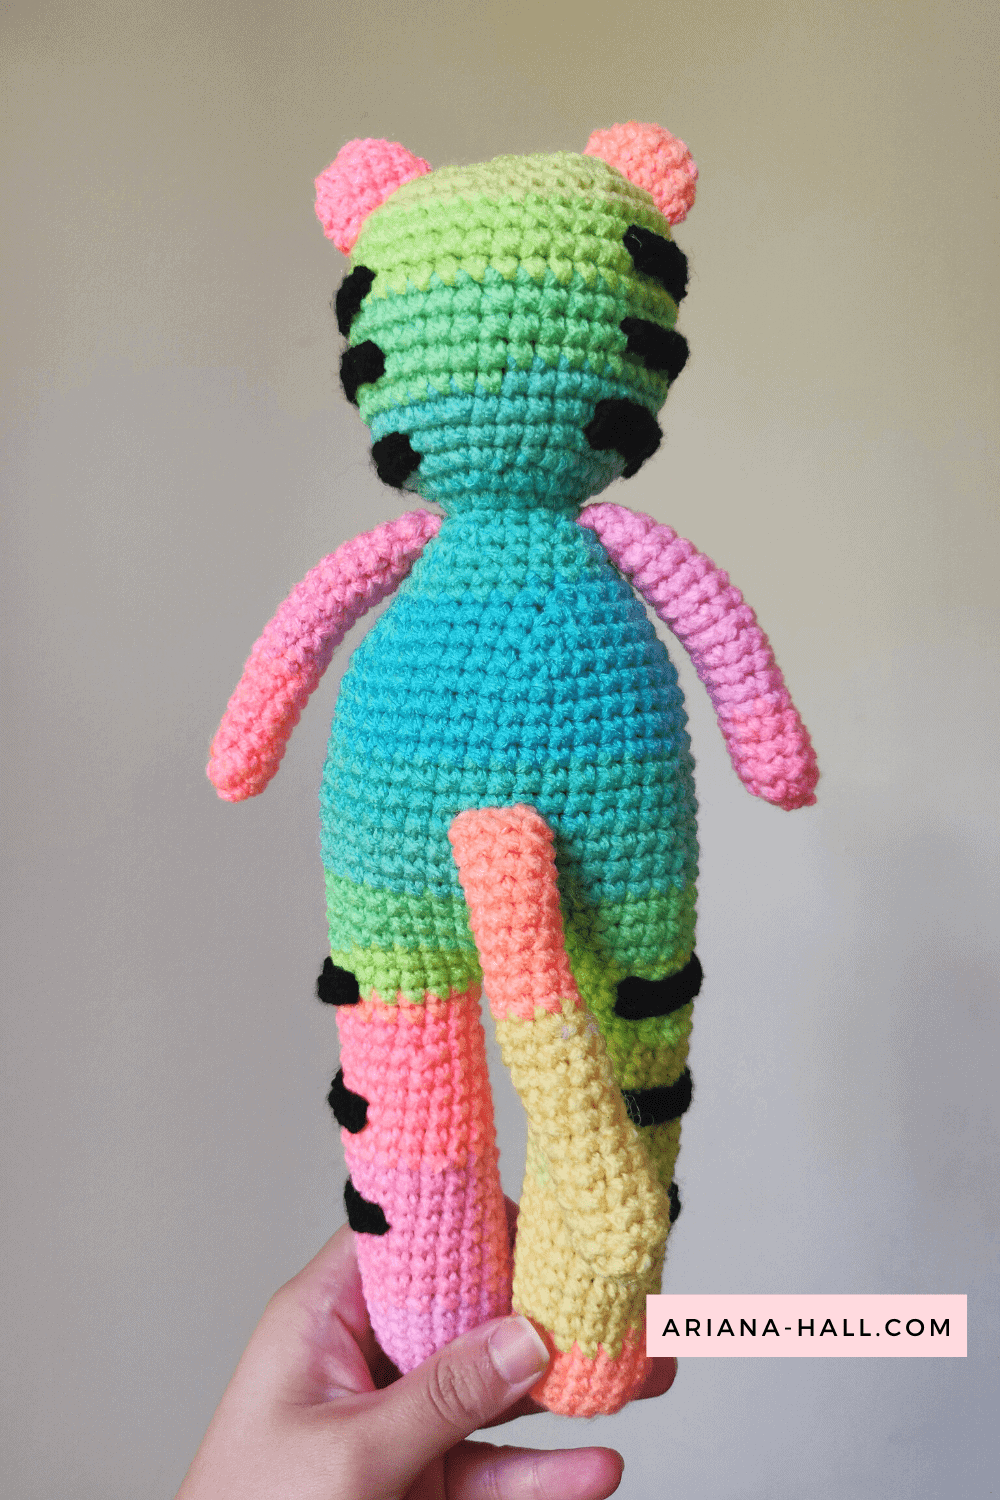 the back of the rainbow crochet Tully the Tiger.